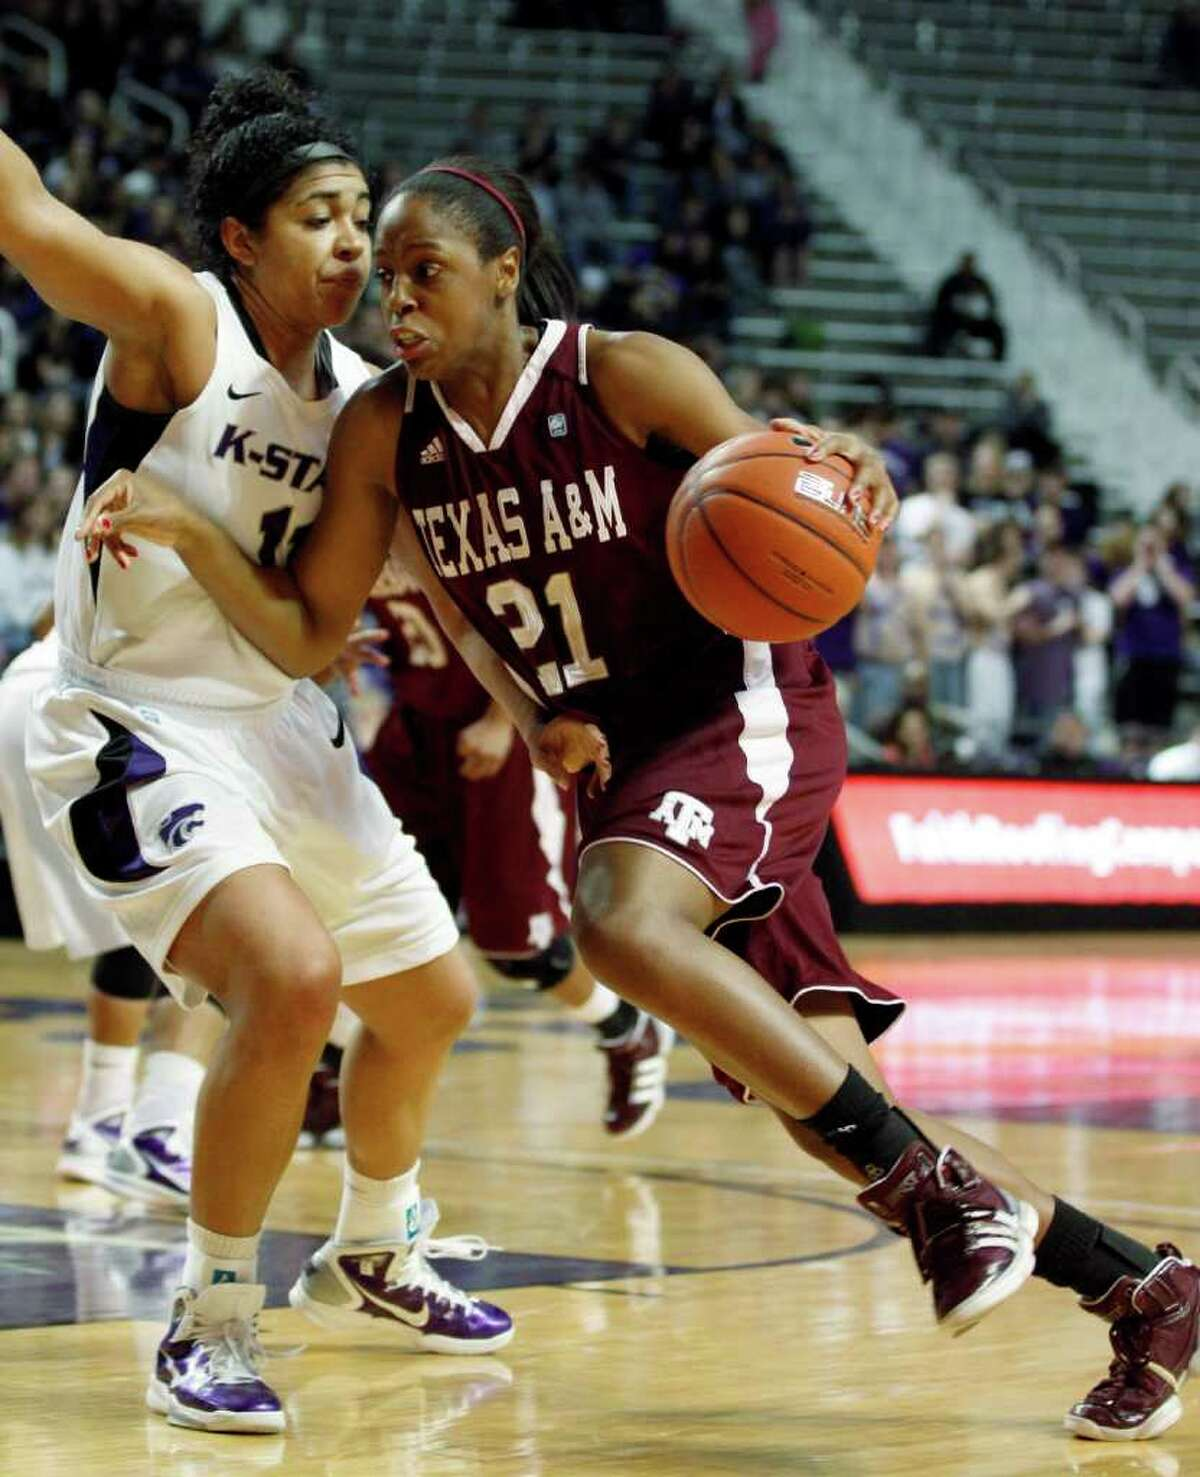 Kansas State's Chantay Caron (11) guards Texas A&M forward Adaora Elonu (21) during the first half of an NCAA college basketball game, Wednesday, March 2, 2011, in Manhattan, Kan.